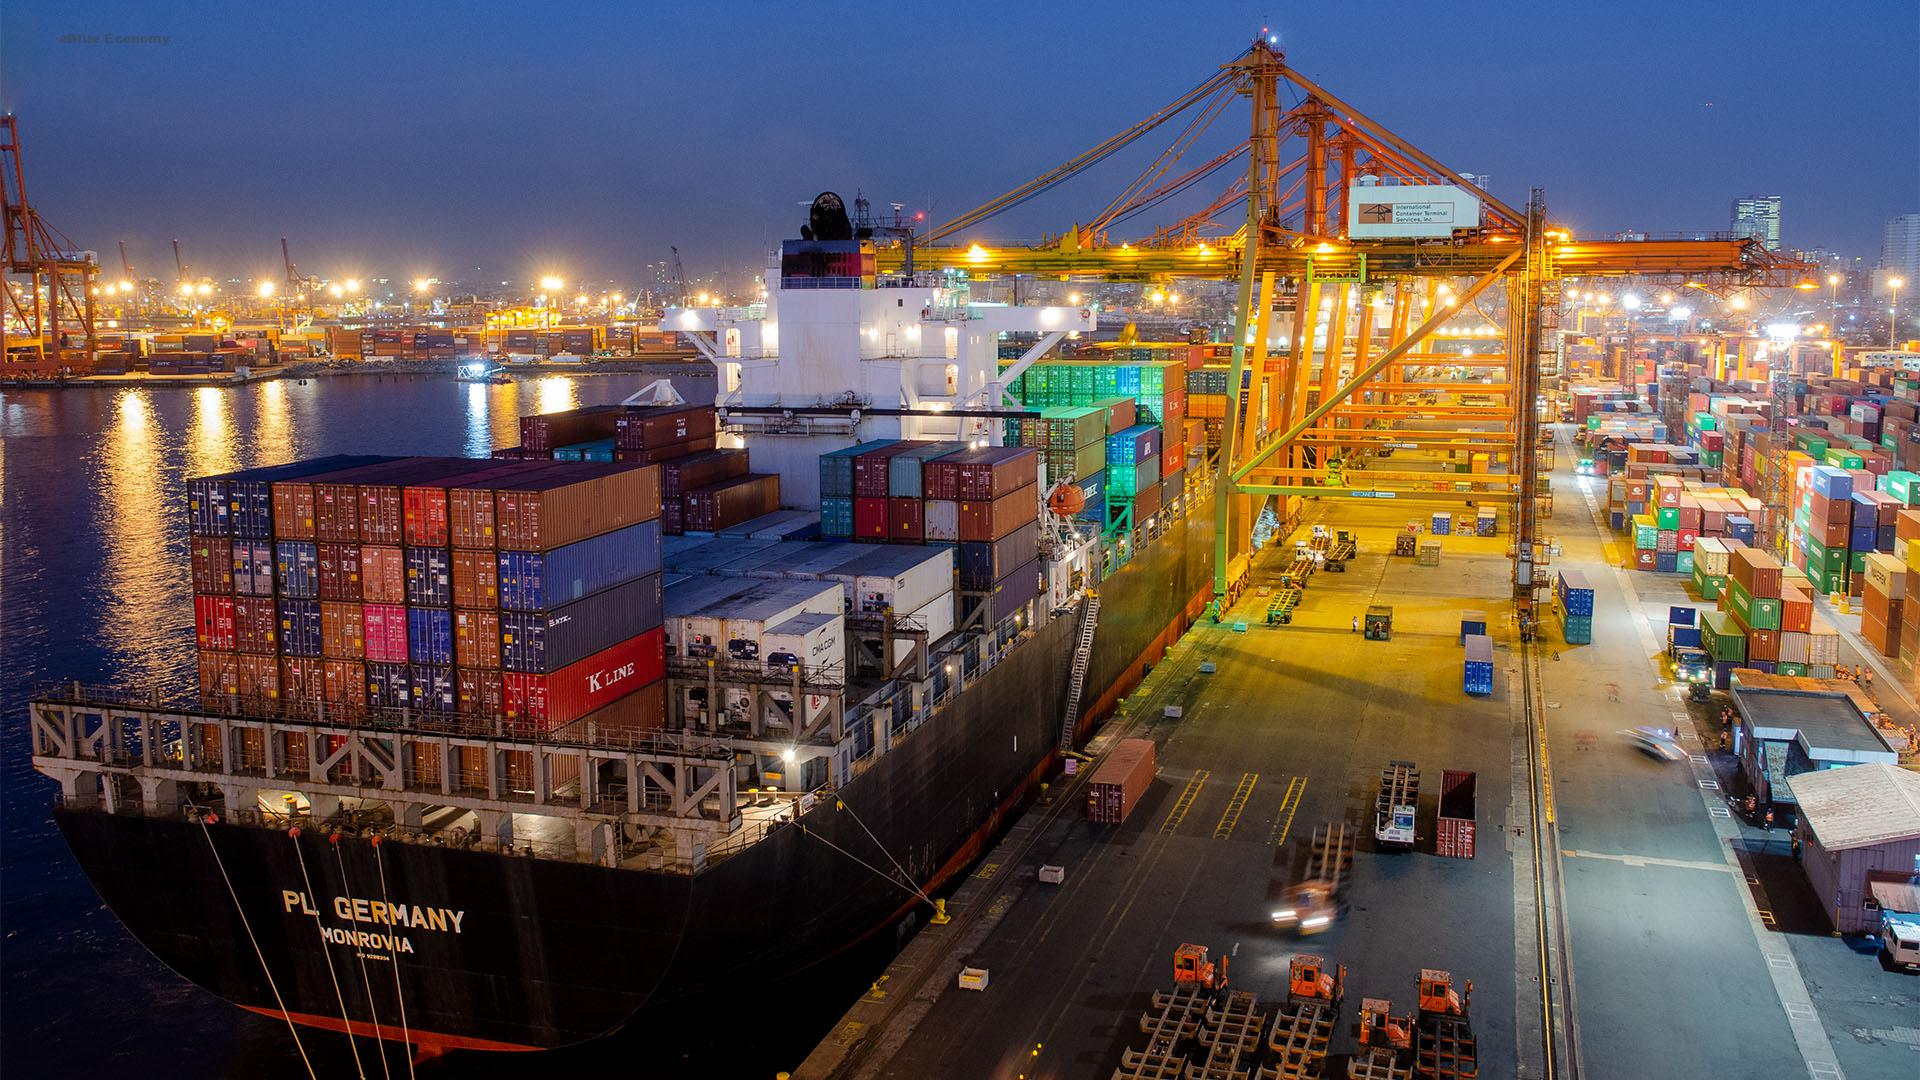 KeBlue_economy_Log.co innovates again as the first digital freight forwarder to join TradeLens in Latin America